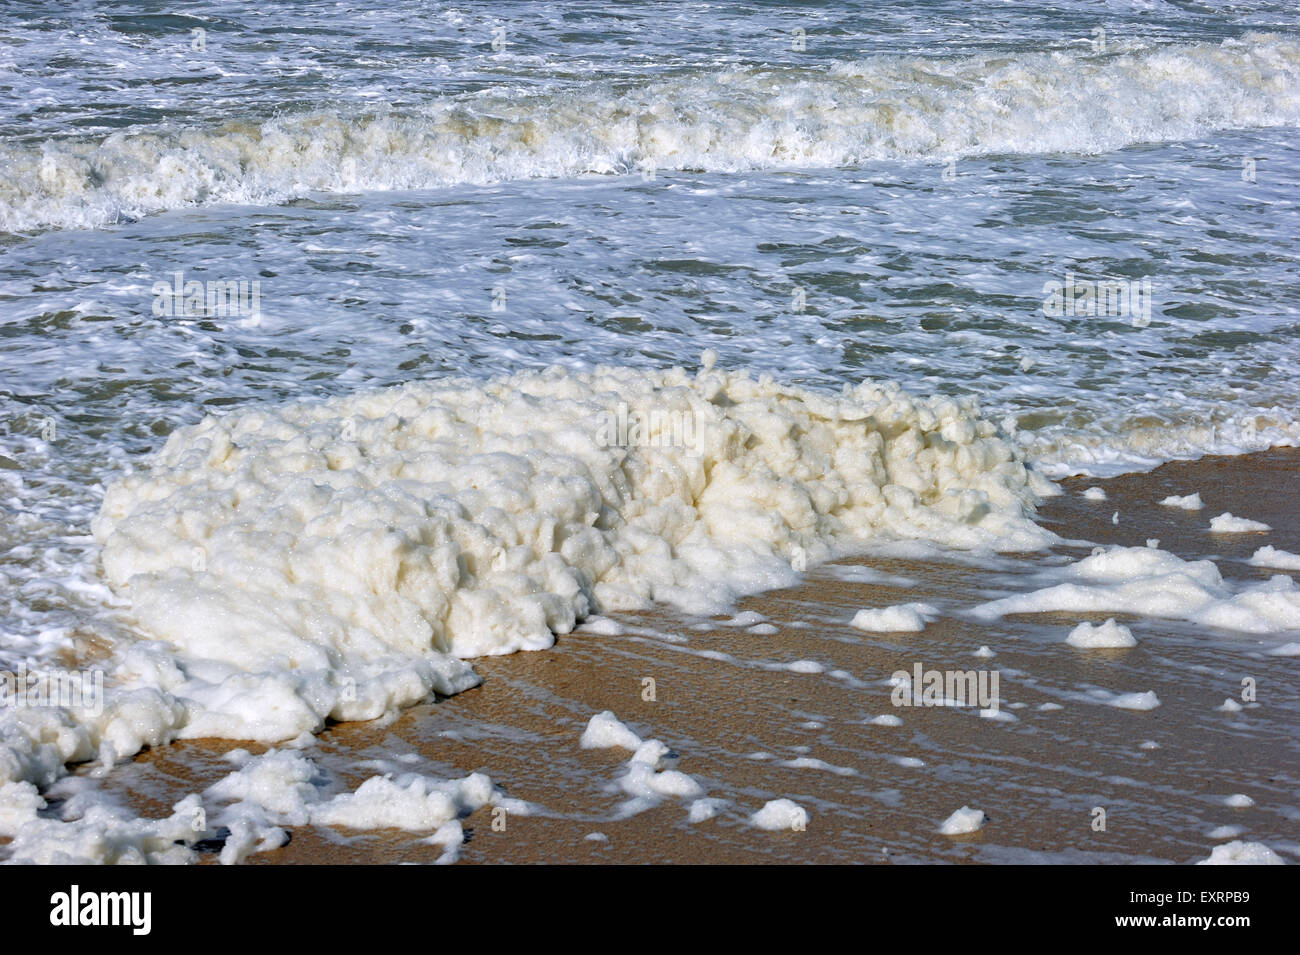 Spume / sea foam / ocean foam / beach foam formed during stormy conditions and following an algal bloom (Phaeocystis) - Stock Image